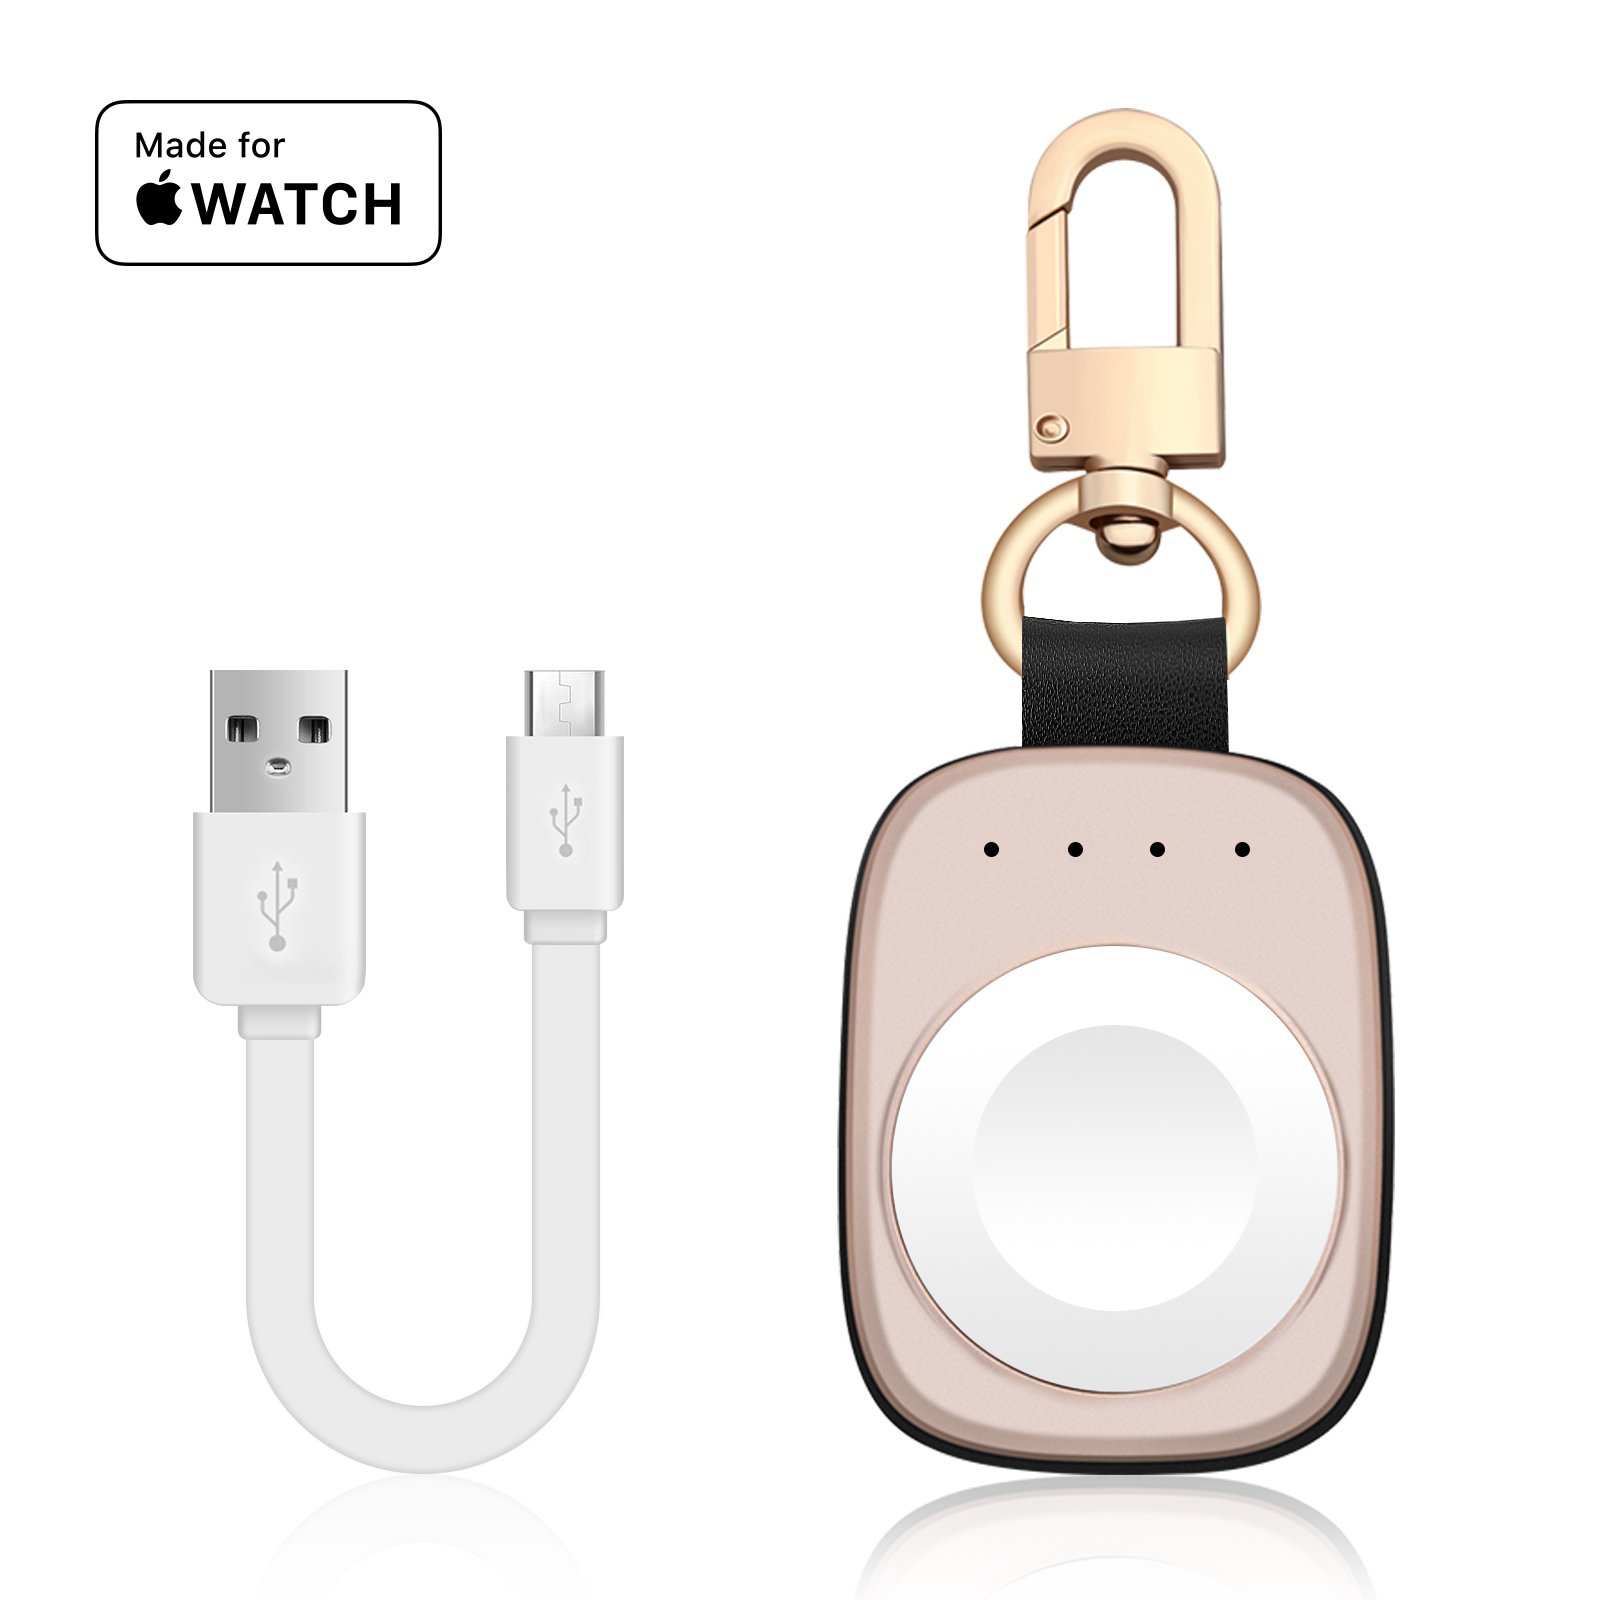 FLAGPOWER Portable Wireless Apple Watch Magnetic Charger, [Apple MFI Certified] Pocket Sized Keychain for Travel, Built in Power Bank for iWatch, Compatible with Apple Watch Series 3/2/1/Nike+